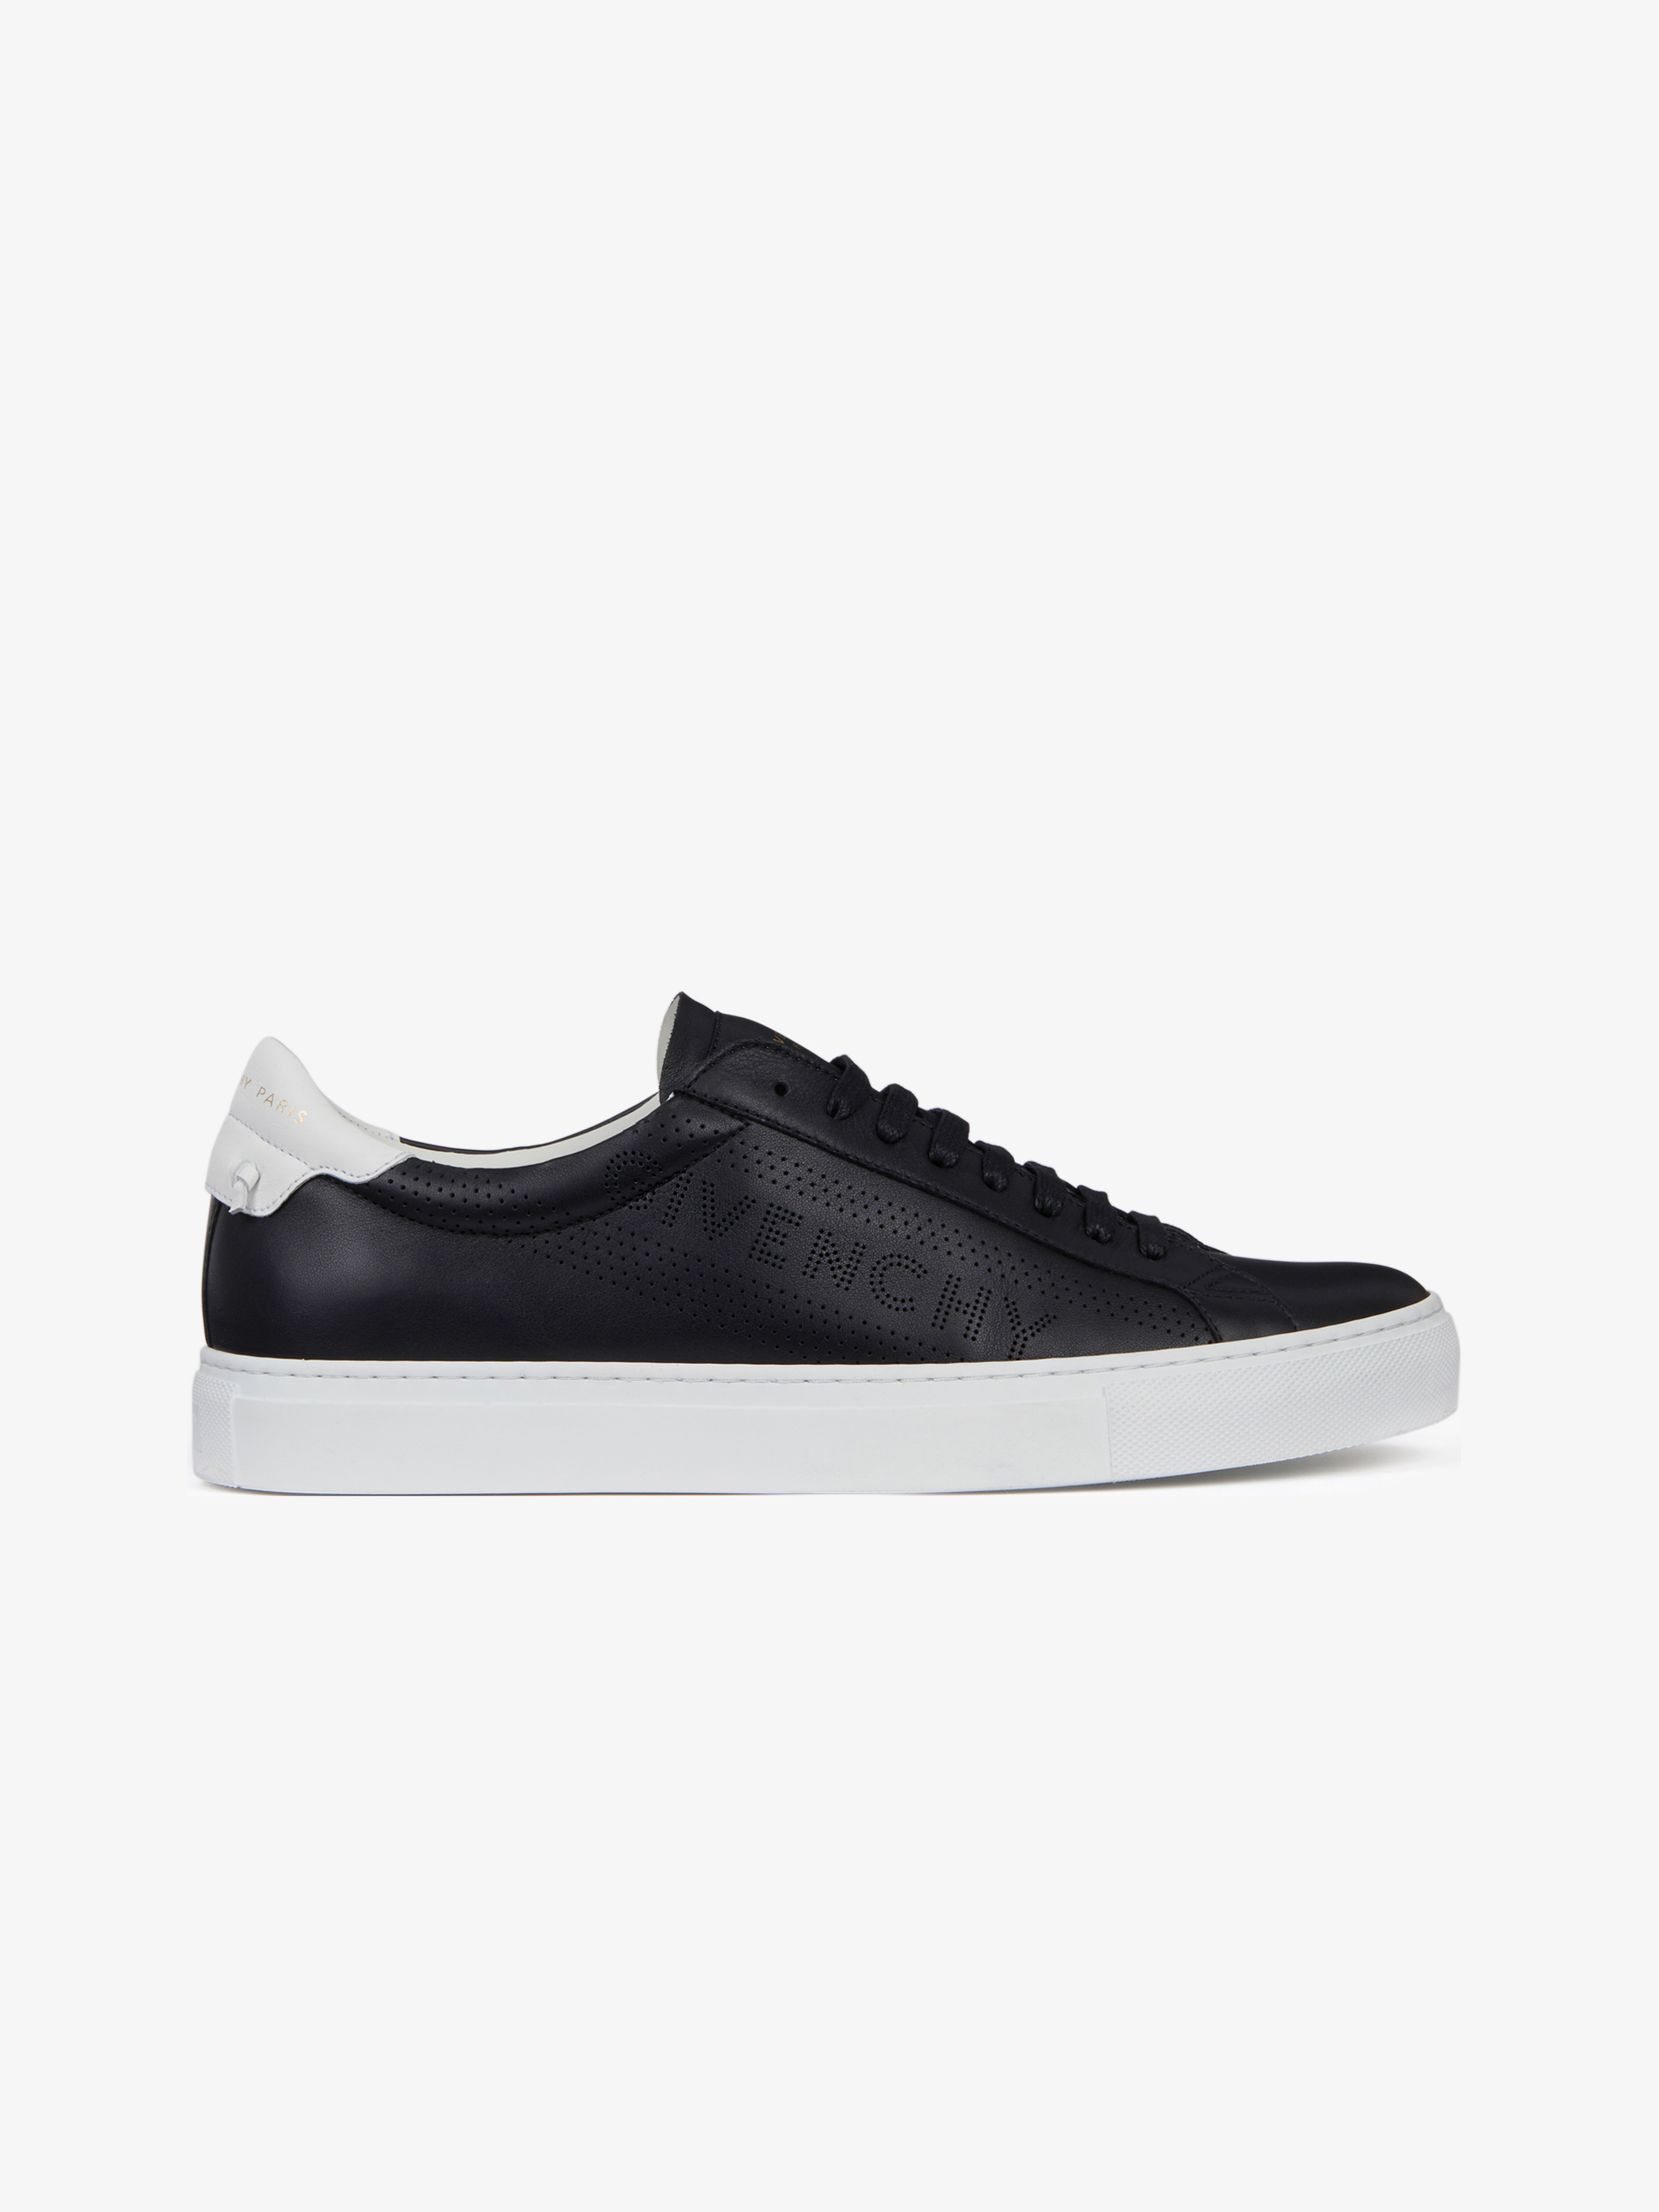 GIVENCHY perforated low sneakers in leather